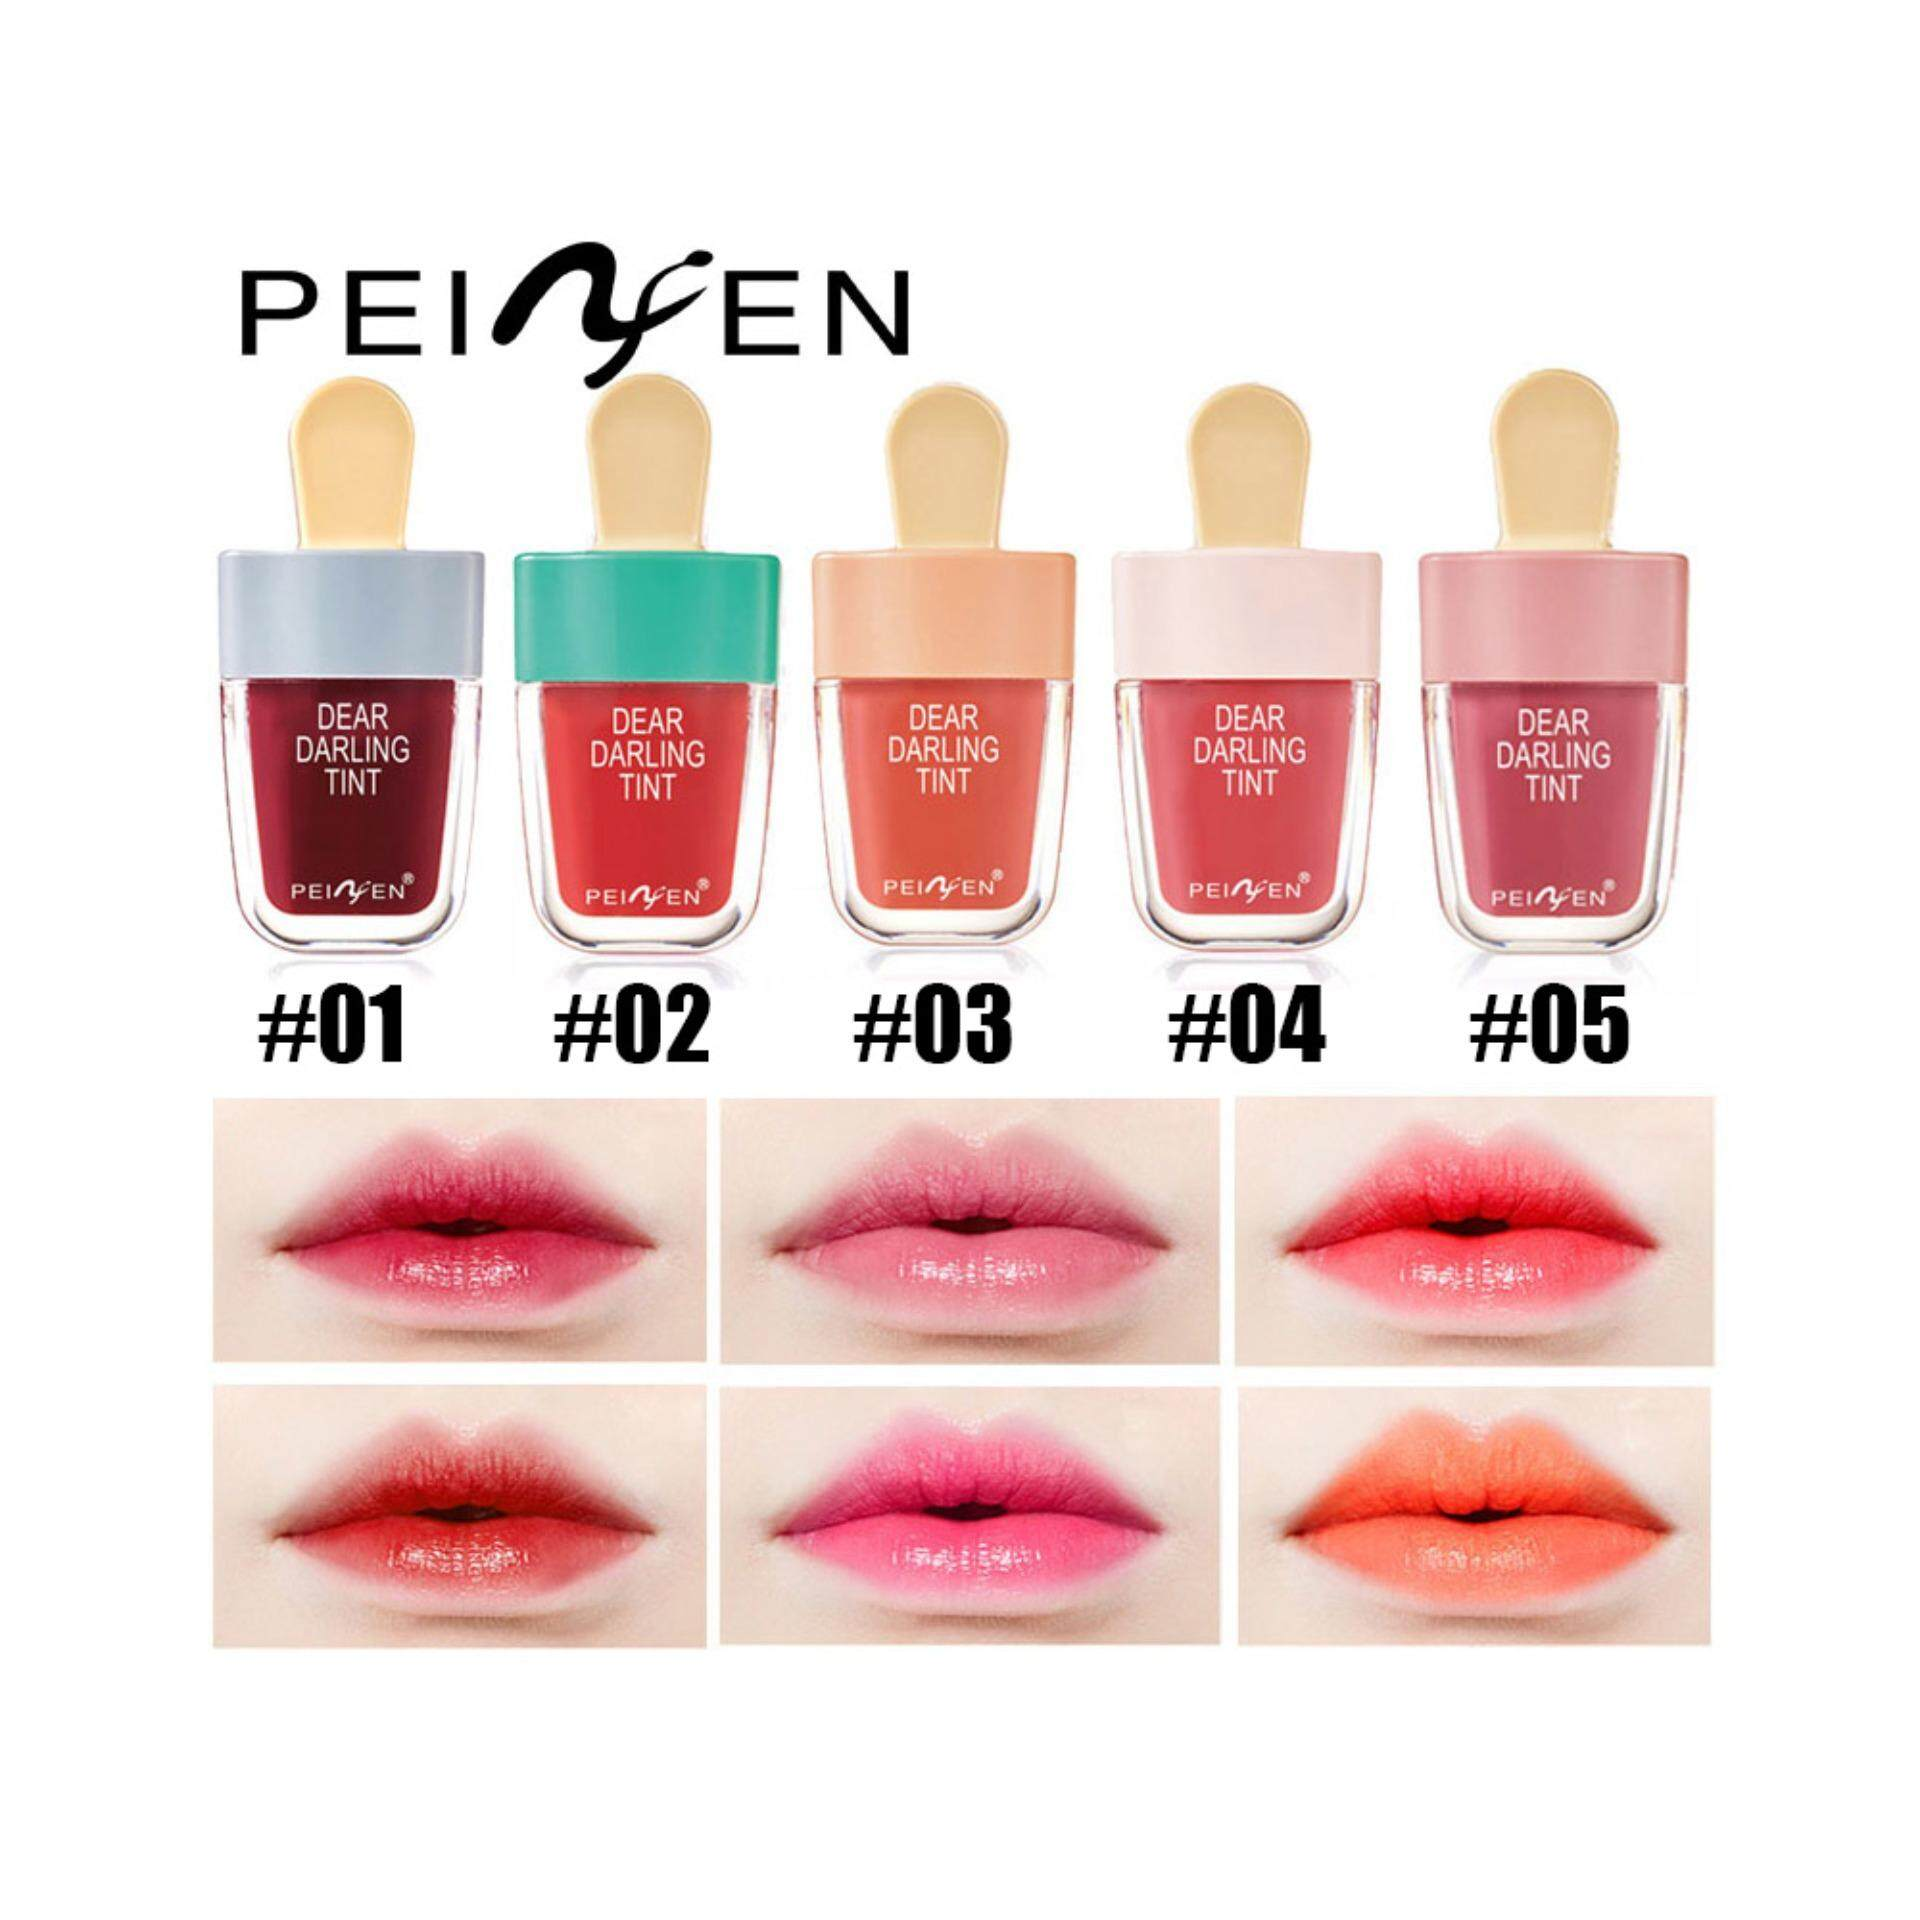 Peiyen 5 In 1 Fresh Sweet Jelly Ice Cream Lipstick Water Liptint Silkygirl Moisture Smooth Lip Color 03 Simply Pink 6g 3331 1box X5pc Malaysia